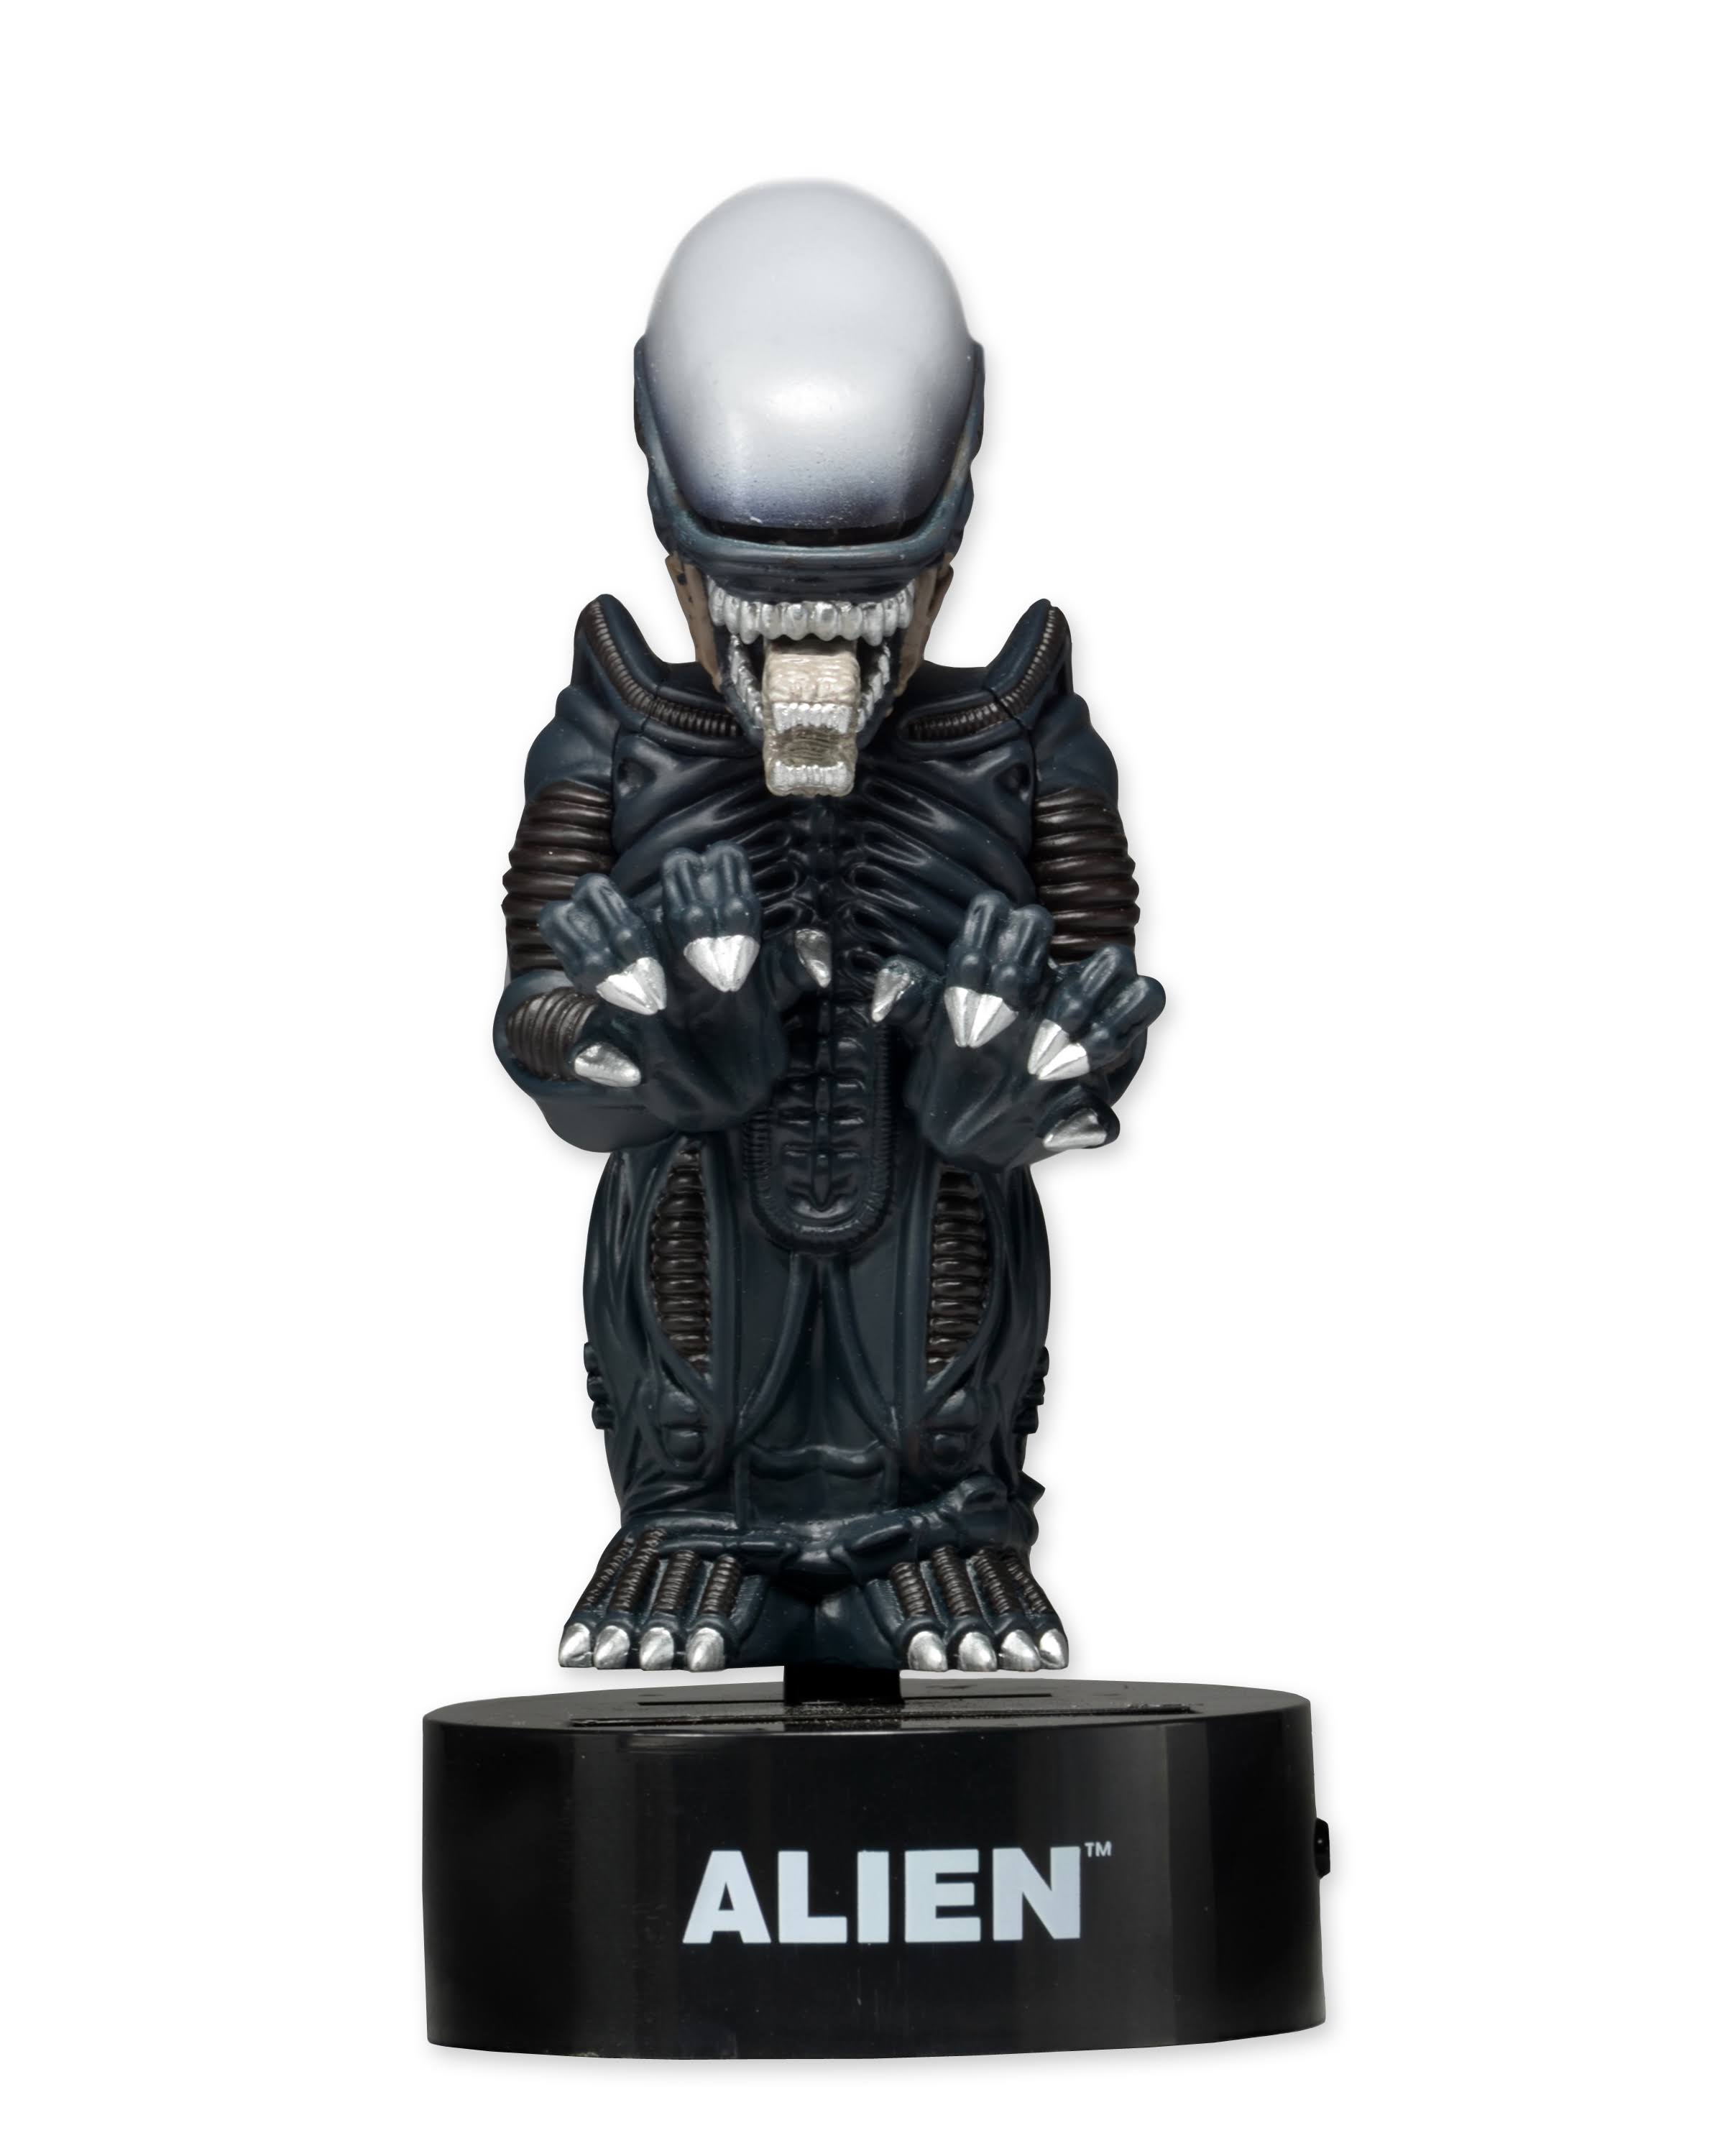 Alien - Body Knocker